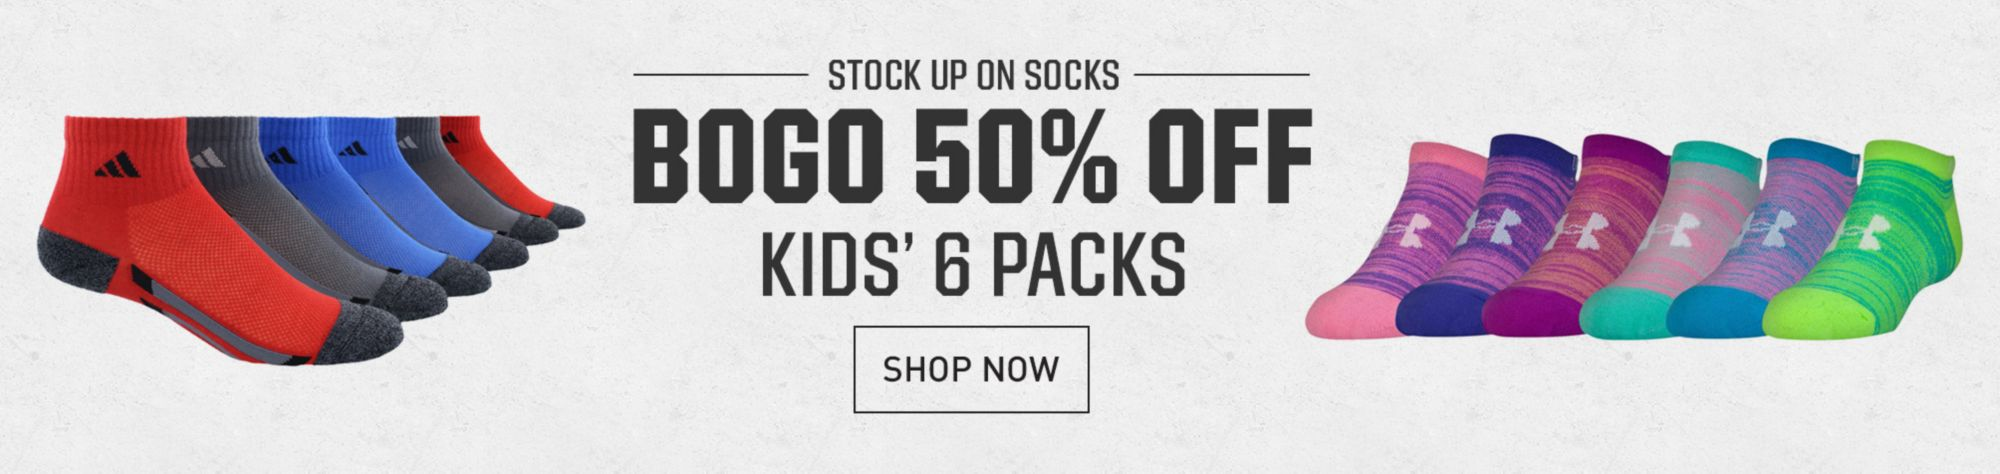 BOGO 50% Youth 6 Pack Socks